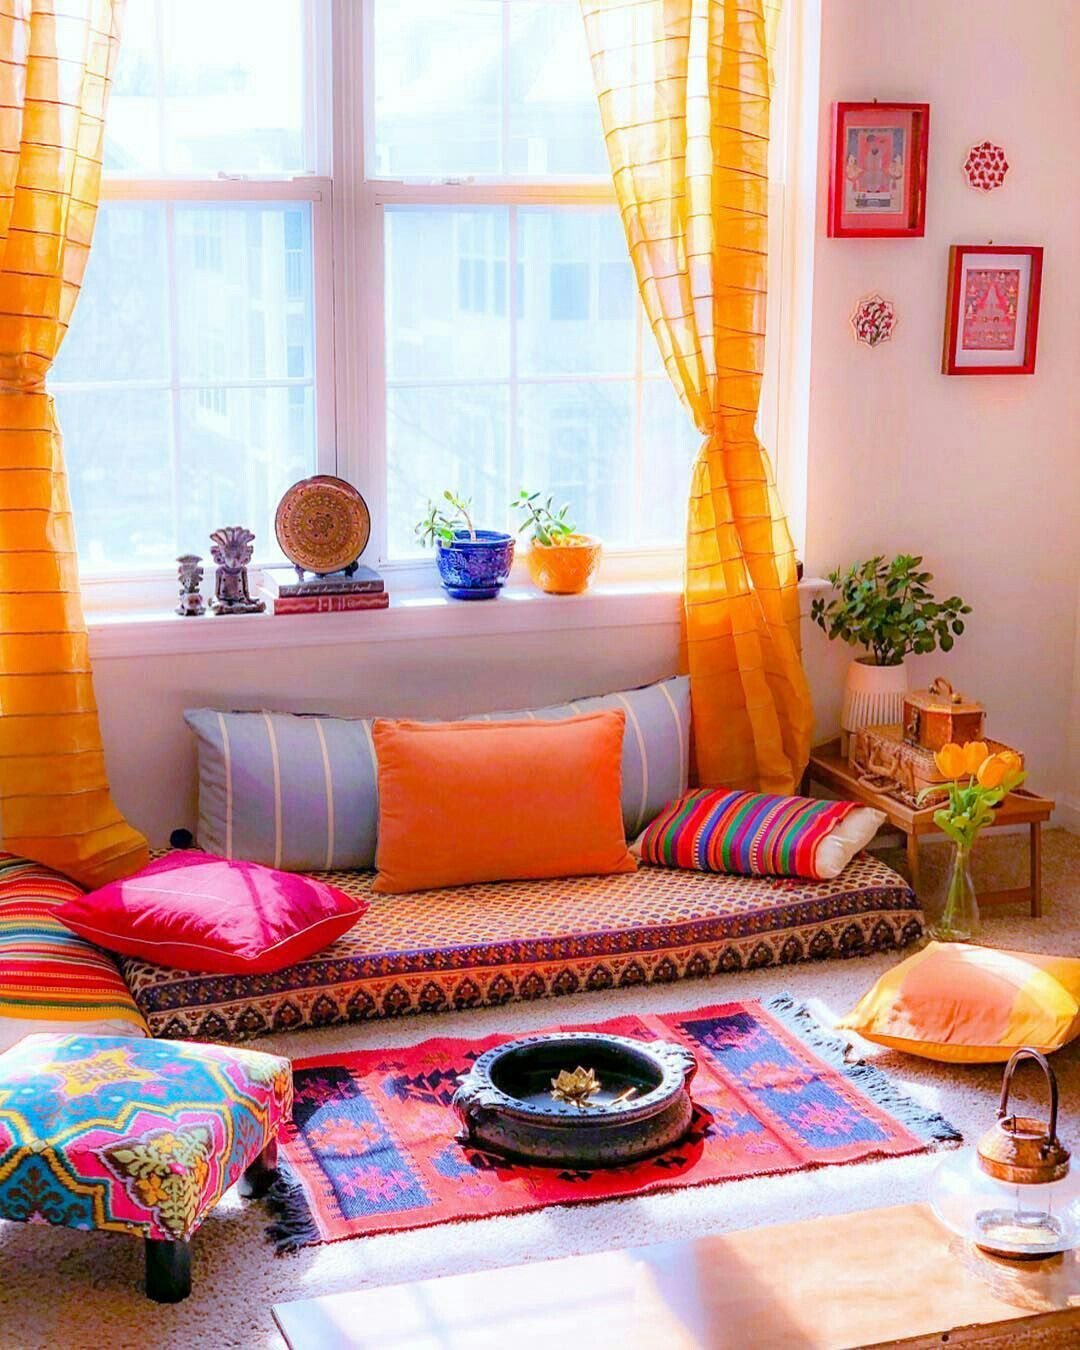 Pin By Glori Strate On Living Room In 2020 House Interior Decor Indian Home Decor Home Decor Furniture